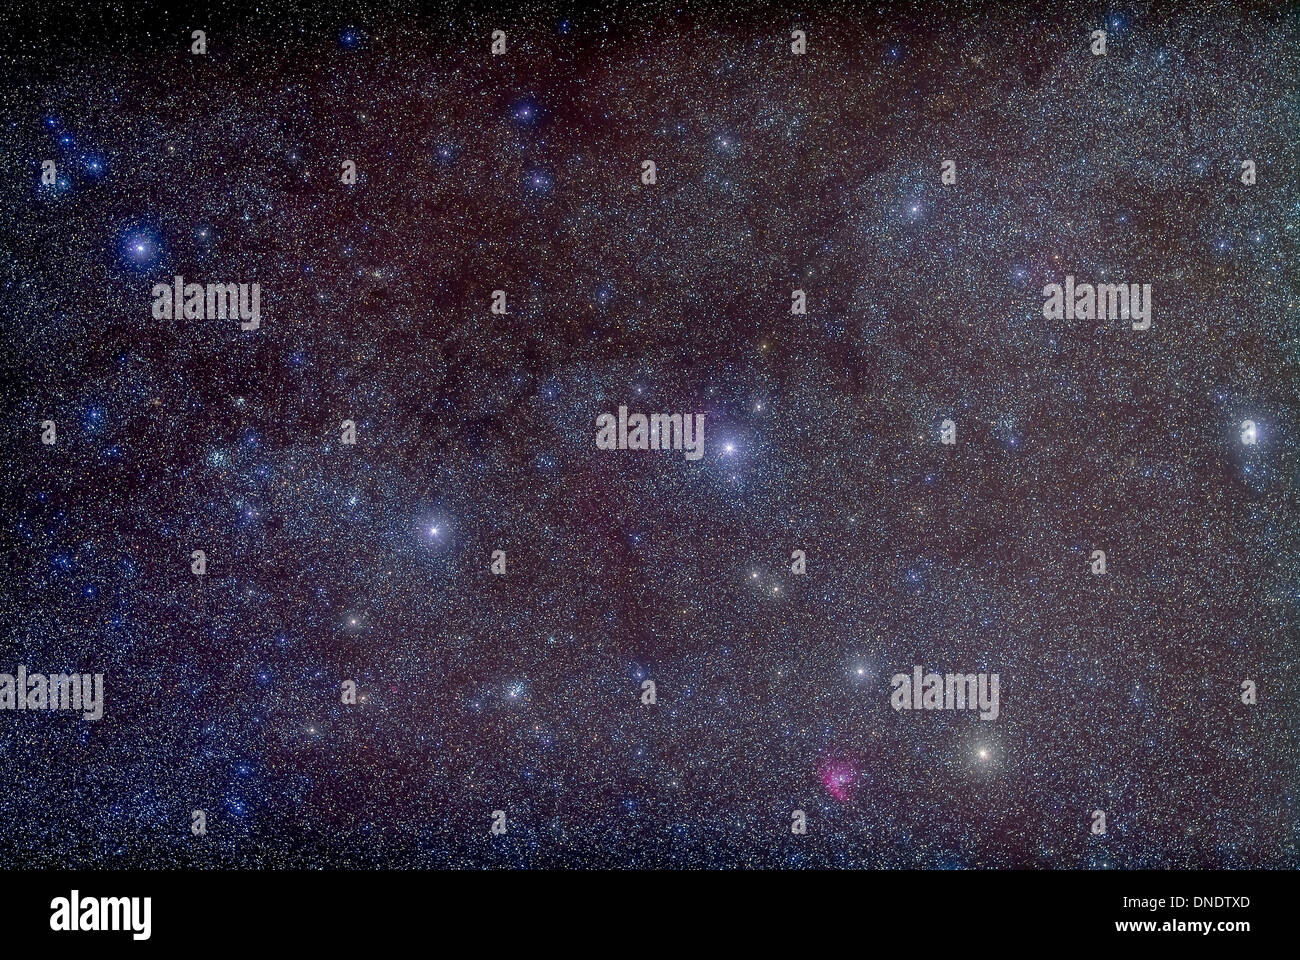 Widefield view of the constellation Cassiopeia showing many deep sky objects, including open clusters and nebulae. - Stock Image